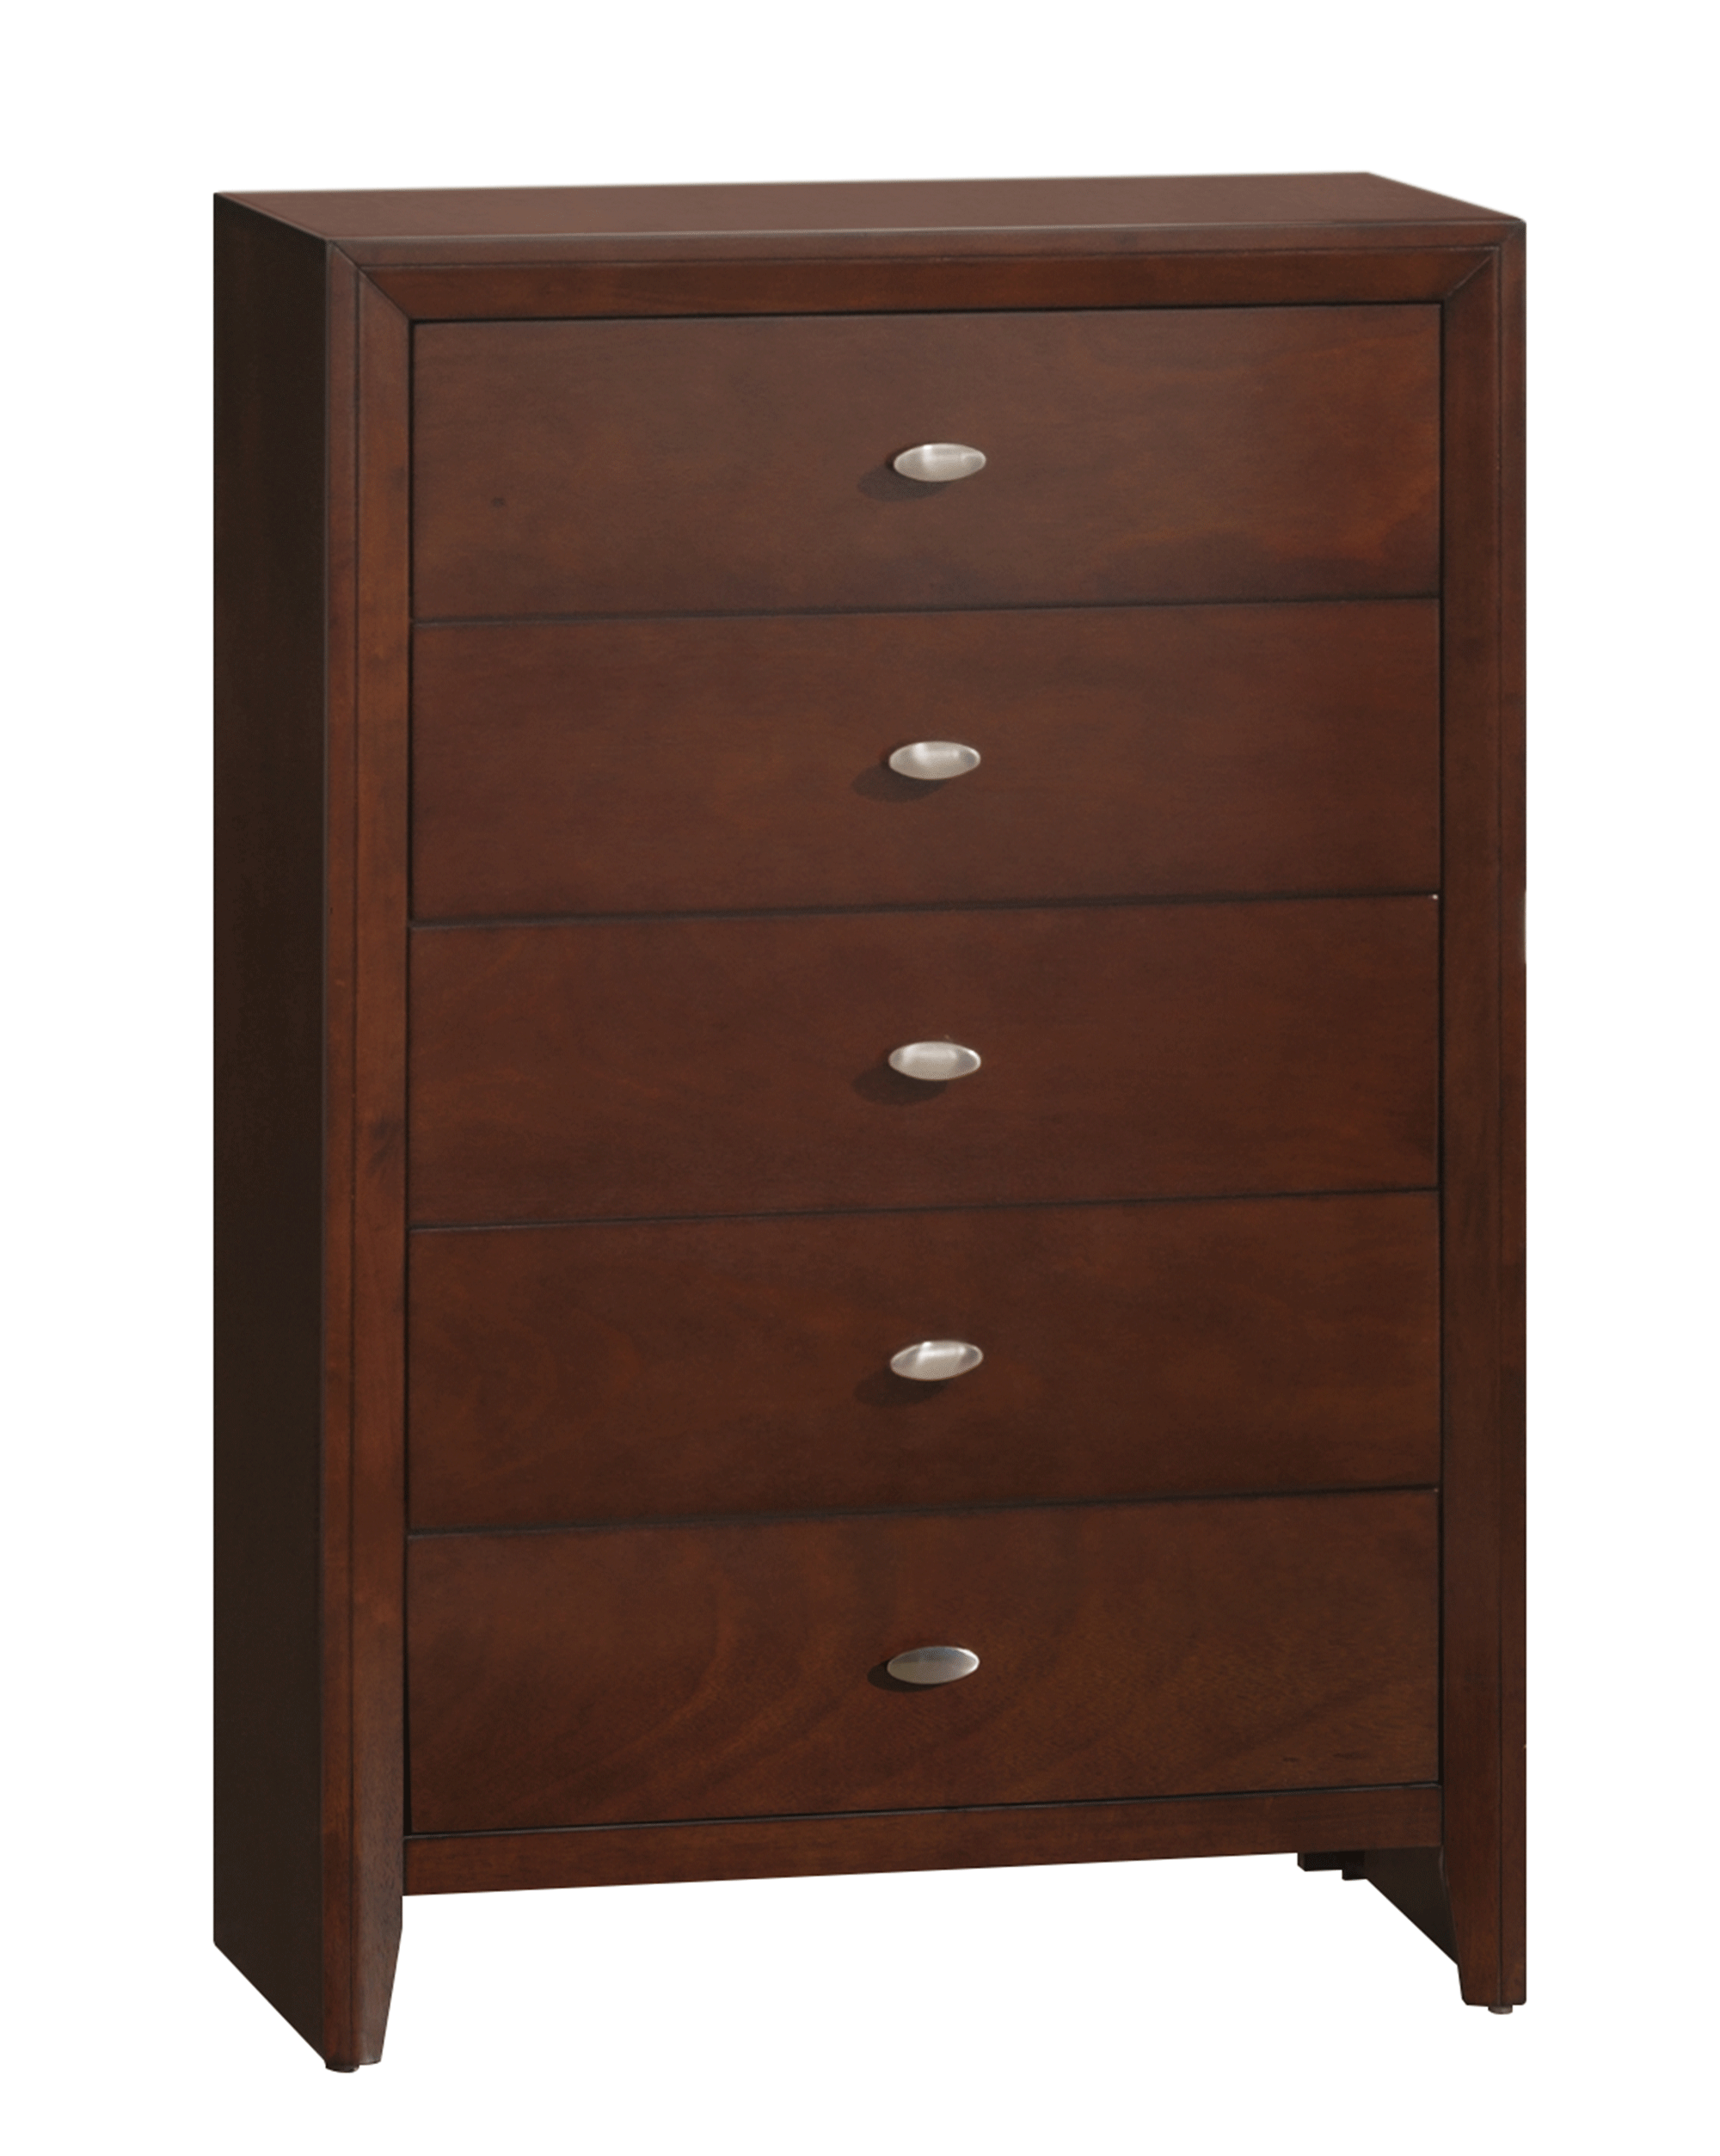 Carolina merlot chest by global furniture for Carolina furniture